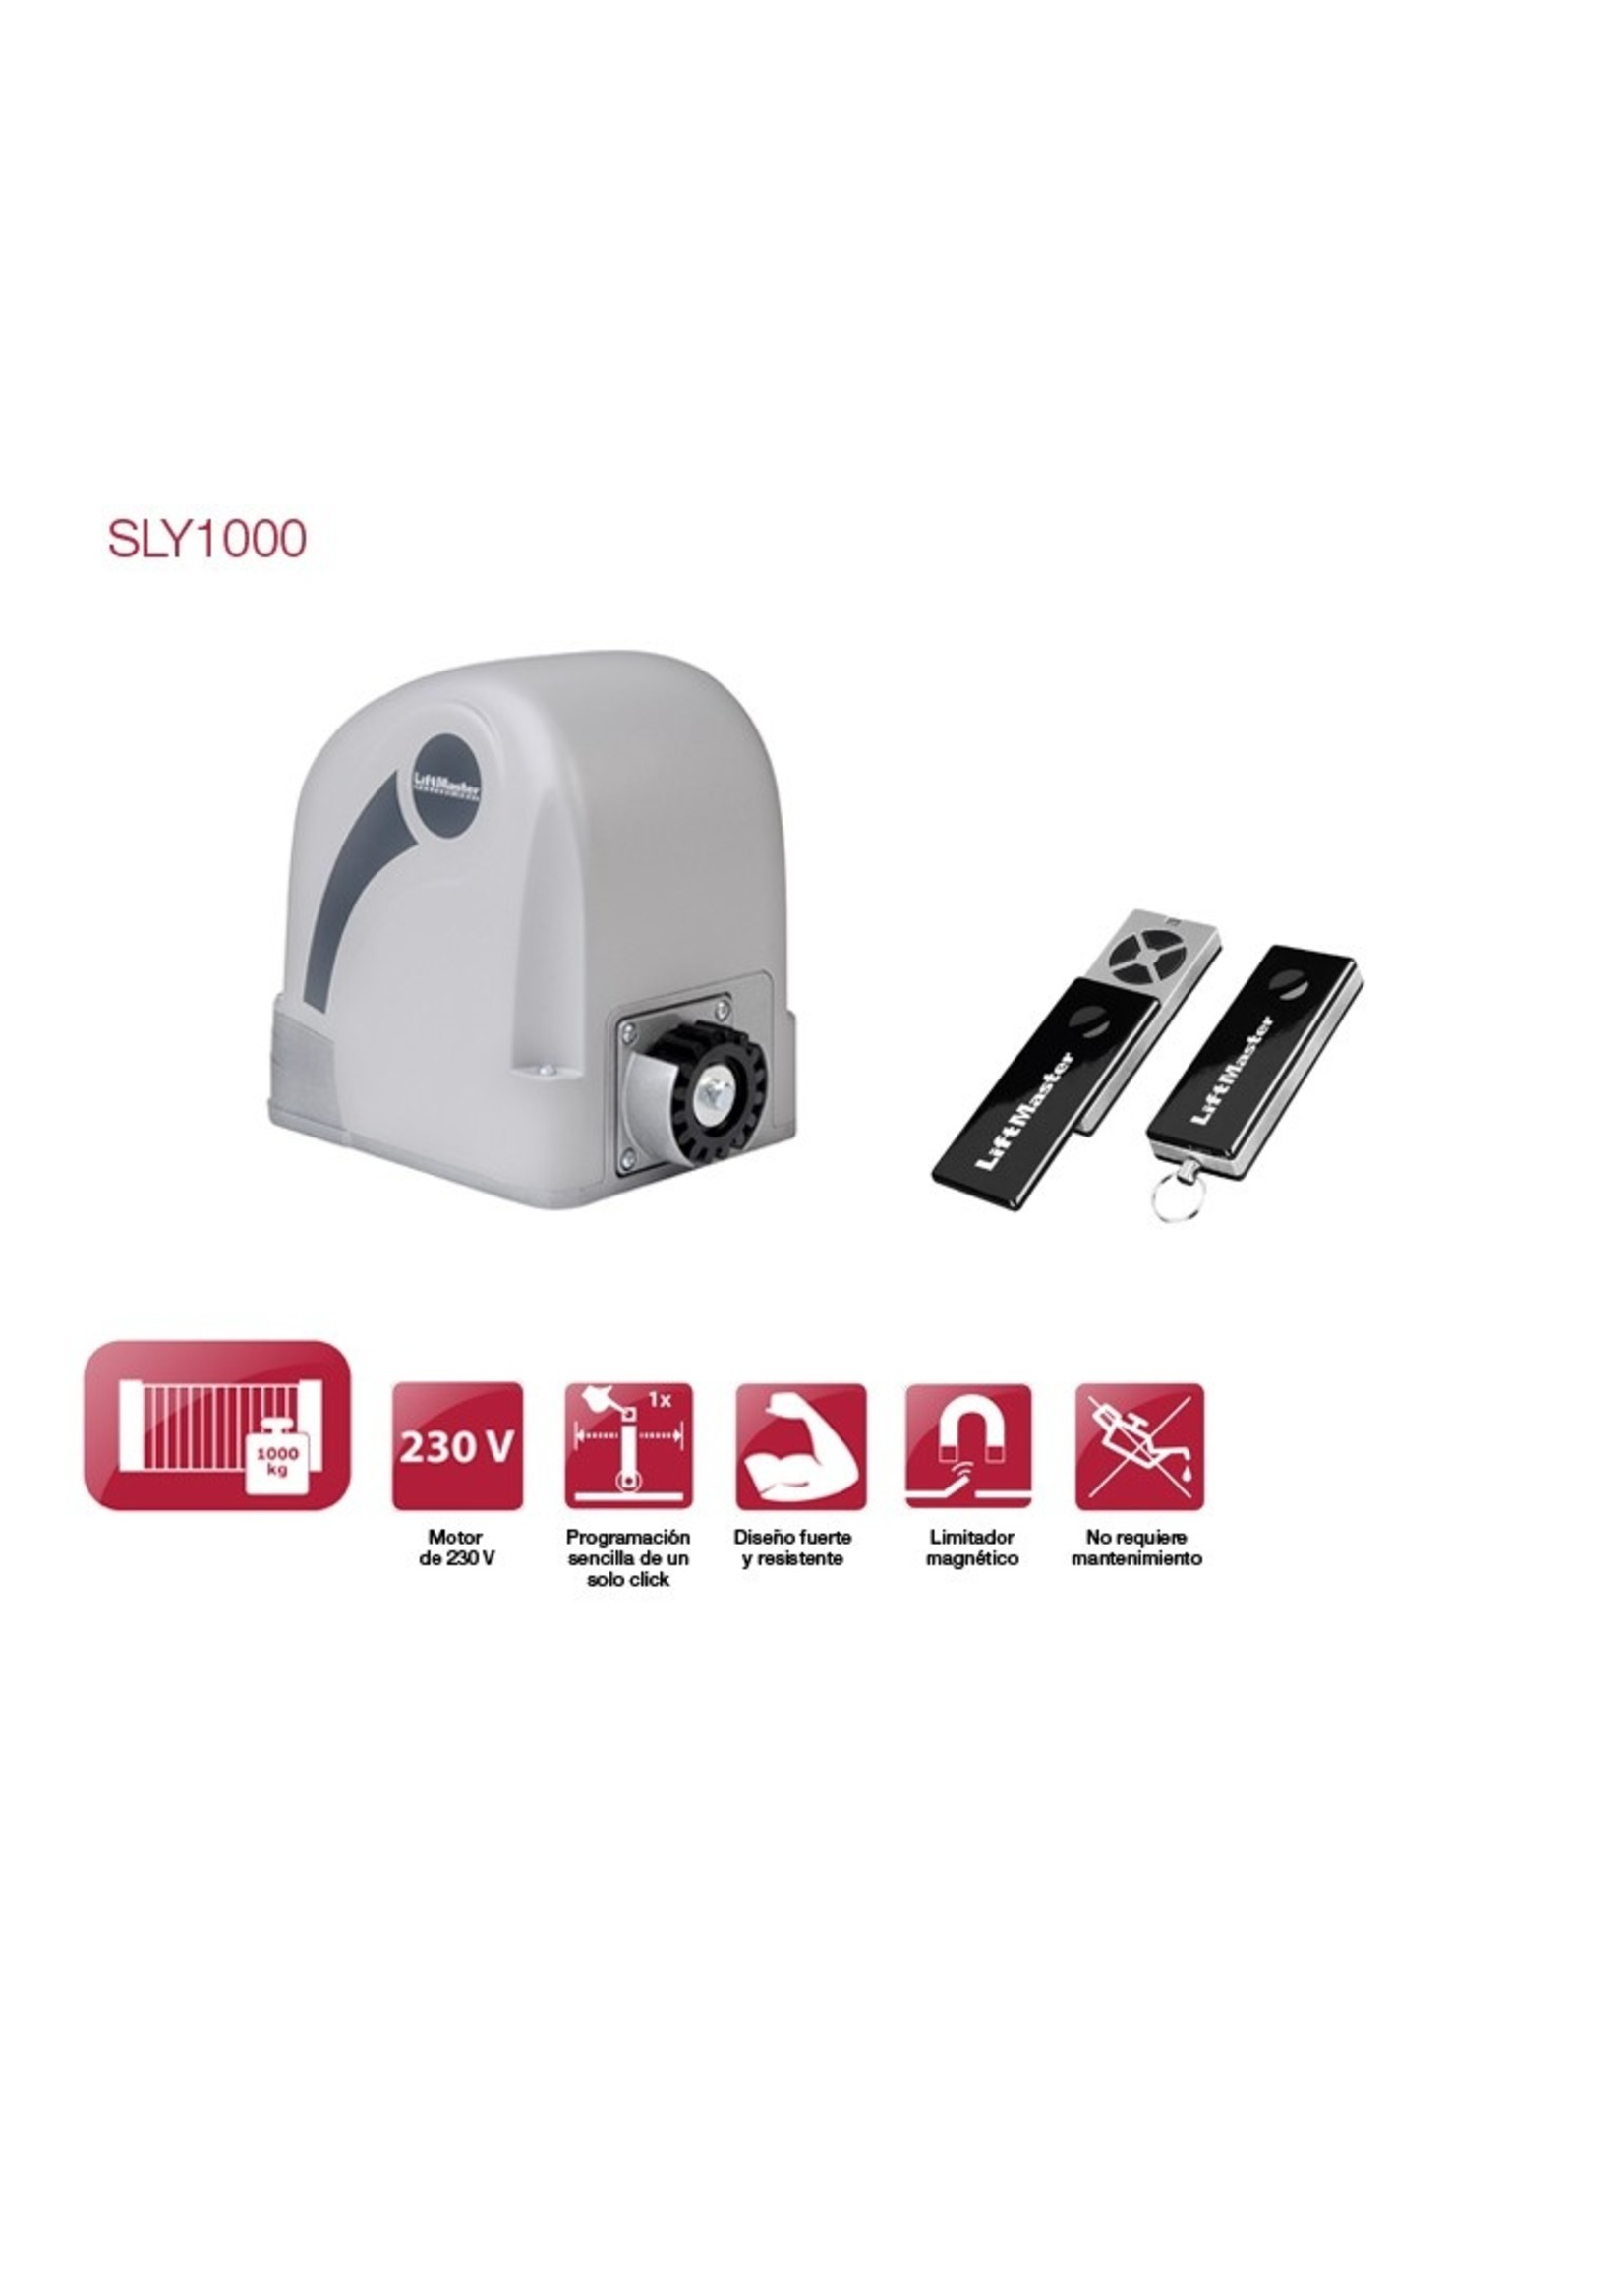 Liftmaster SLY1000K 230V Operateur pour portail coulissant